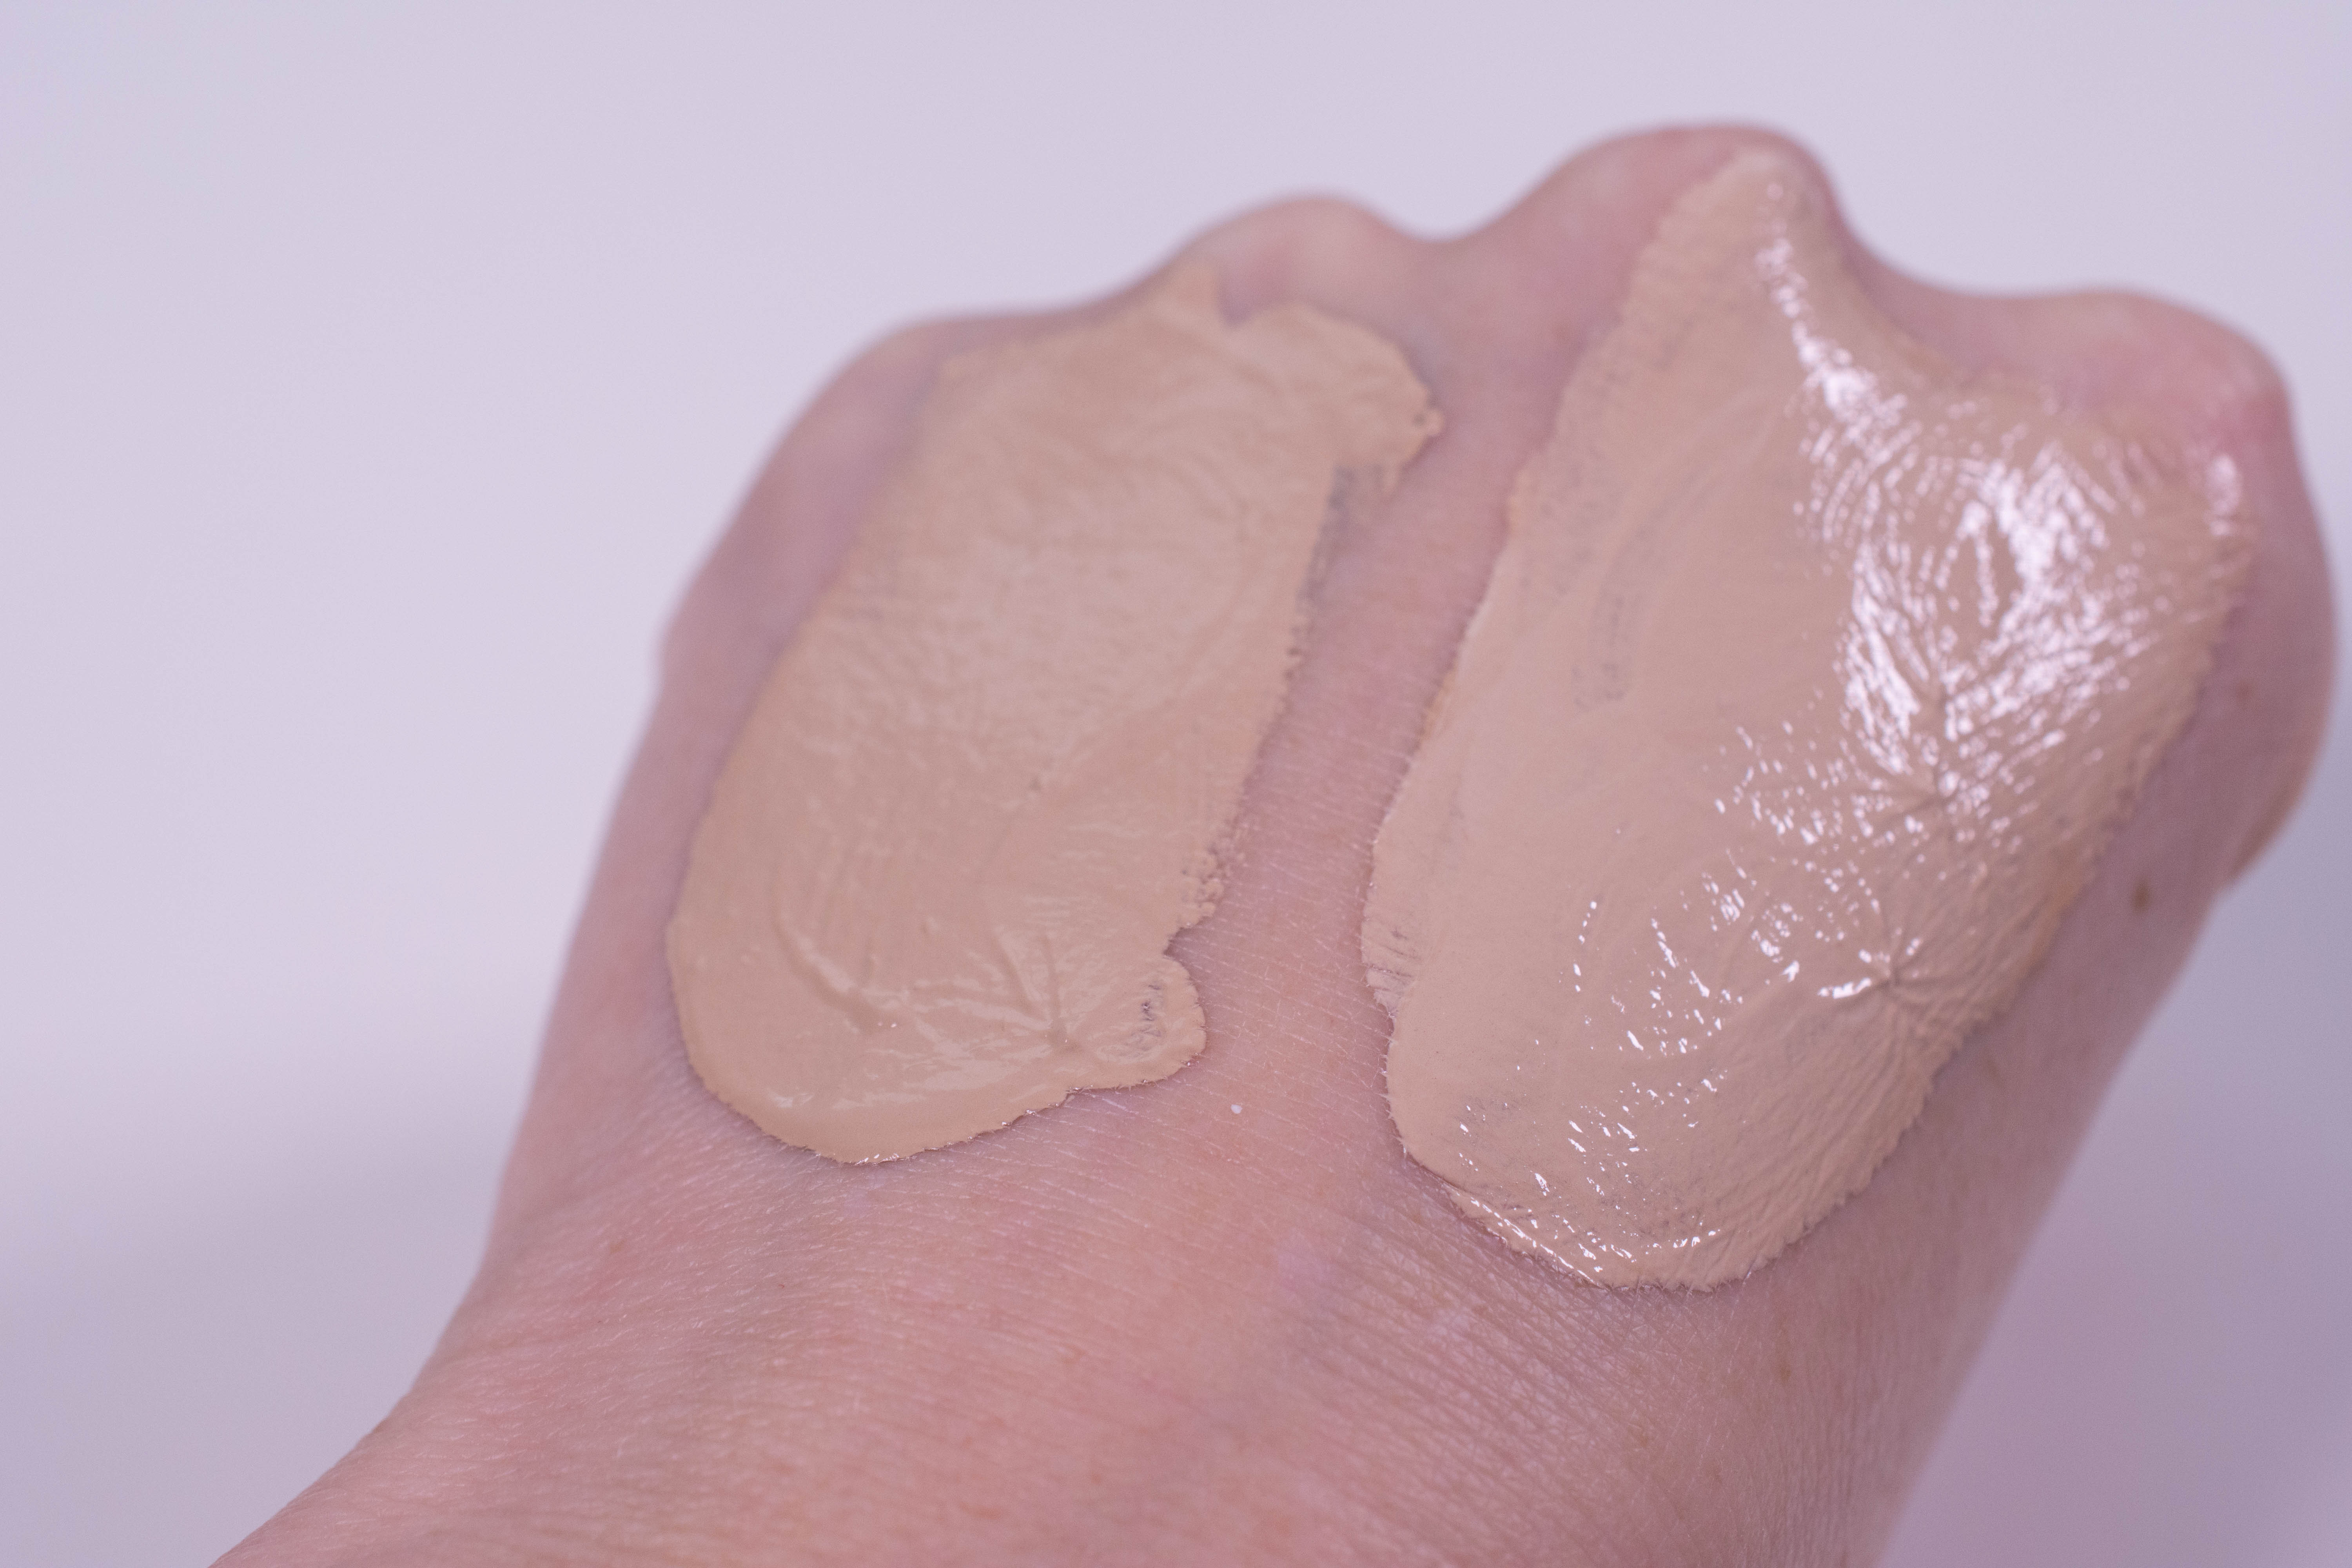 Catrice All Matt plus foundation in Light Beige on the left, same foundation mixed with one drop of TBS Shade Adjusting Drops on the right